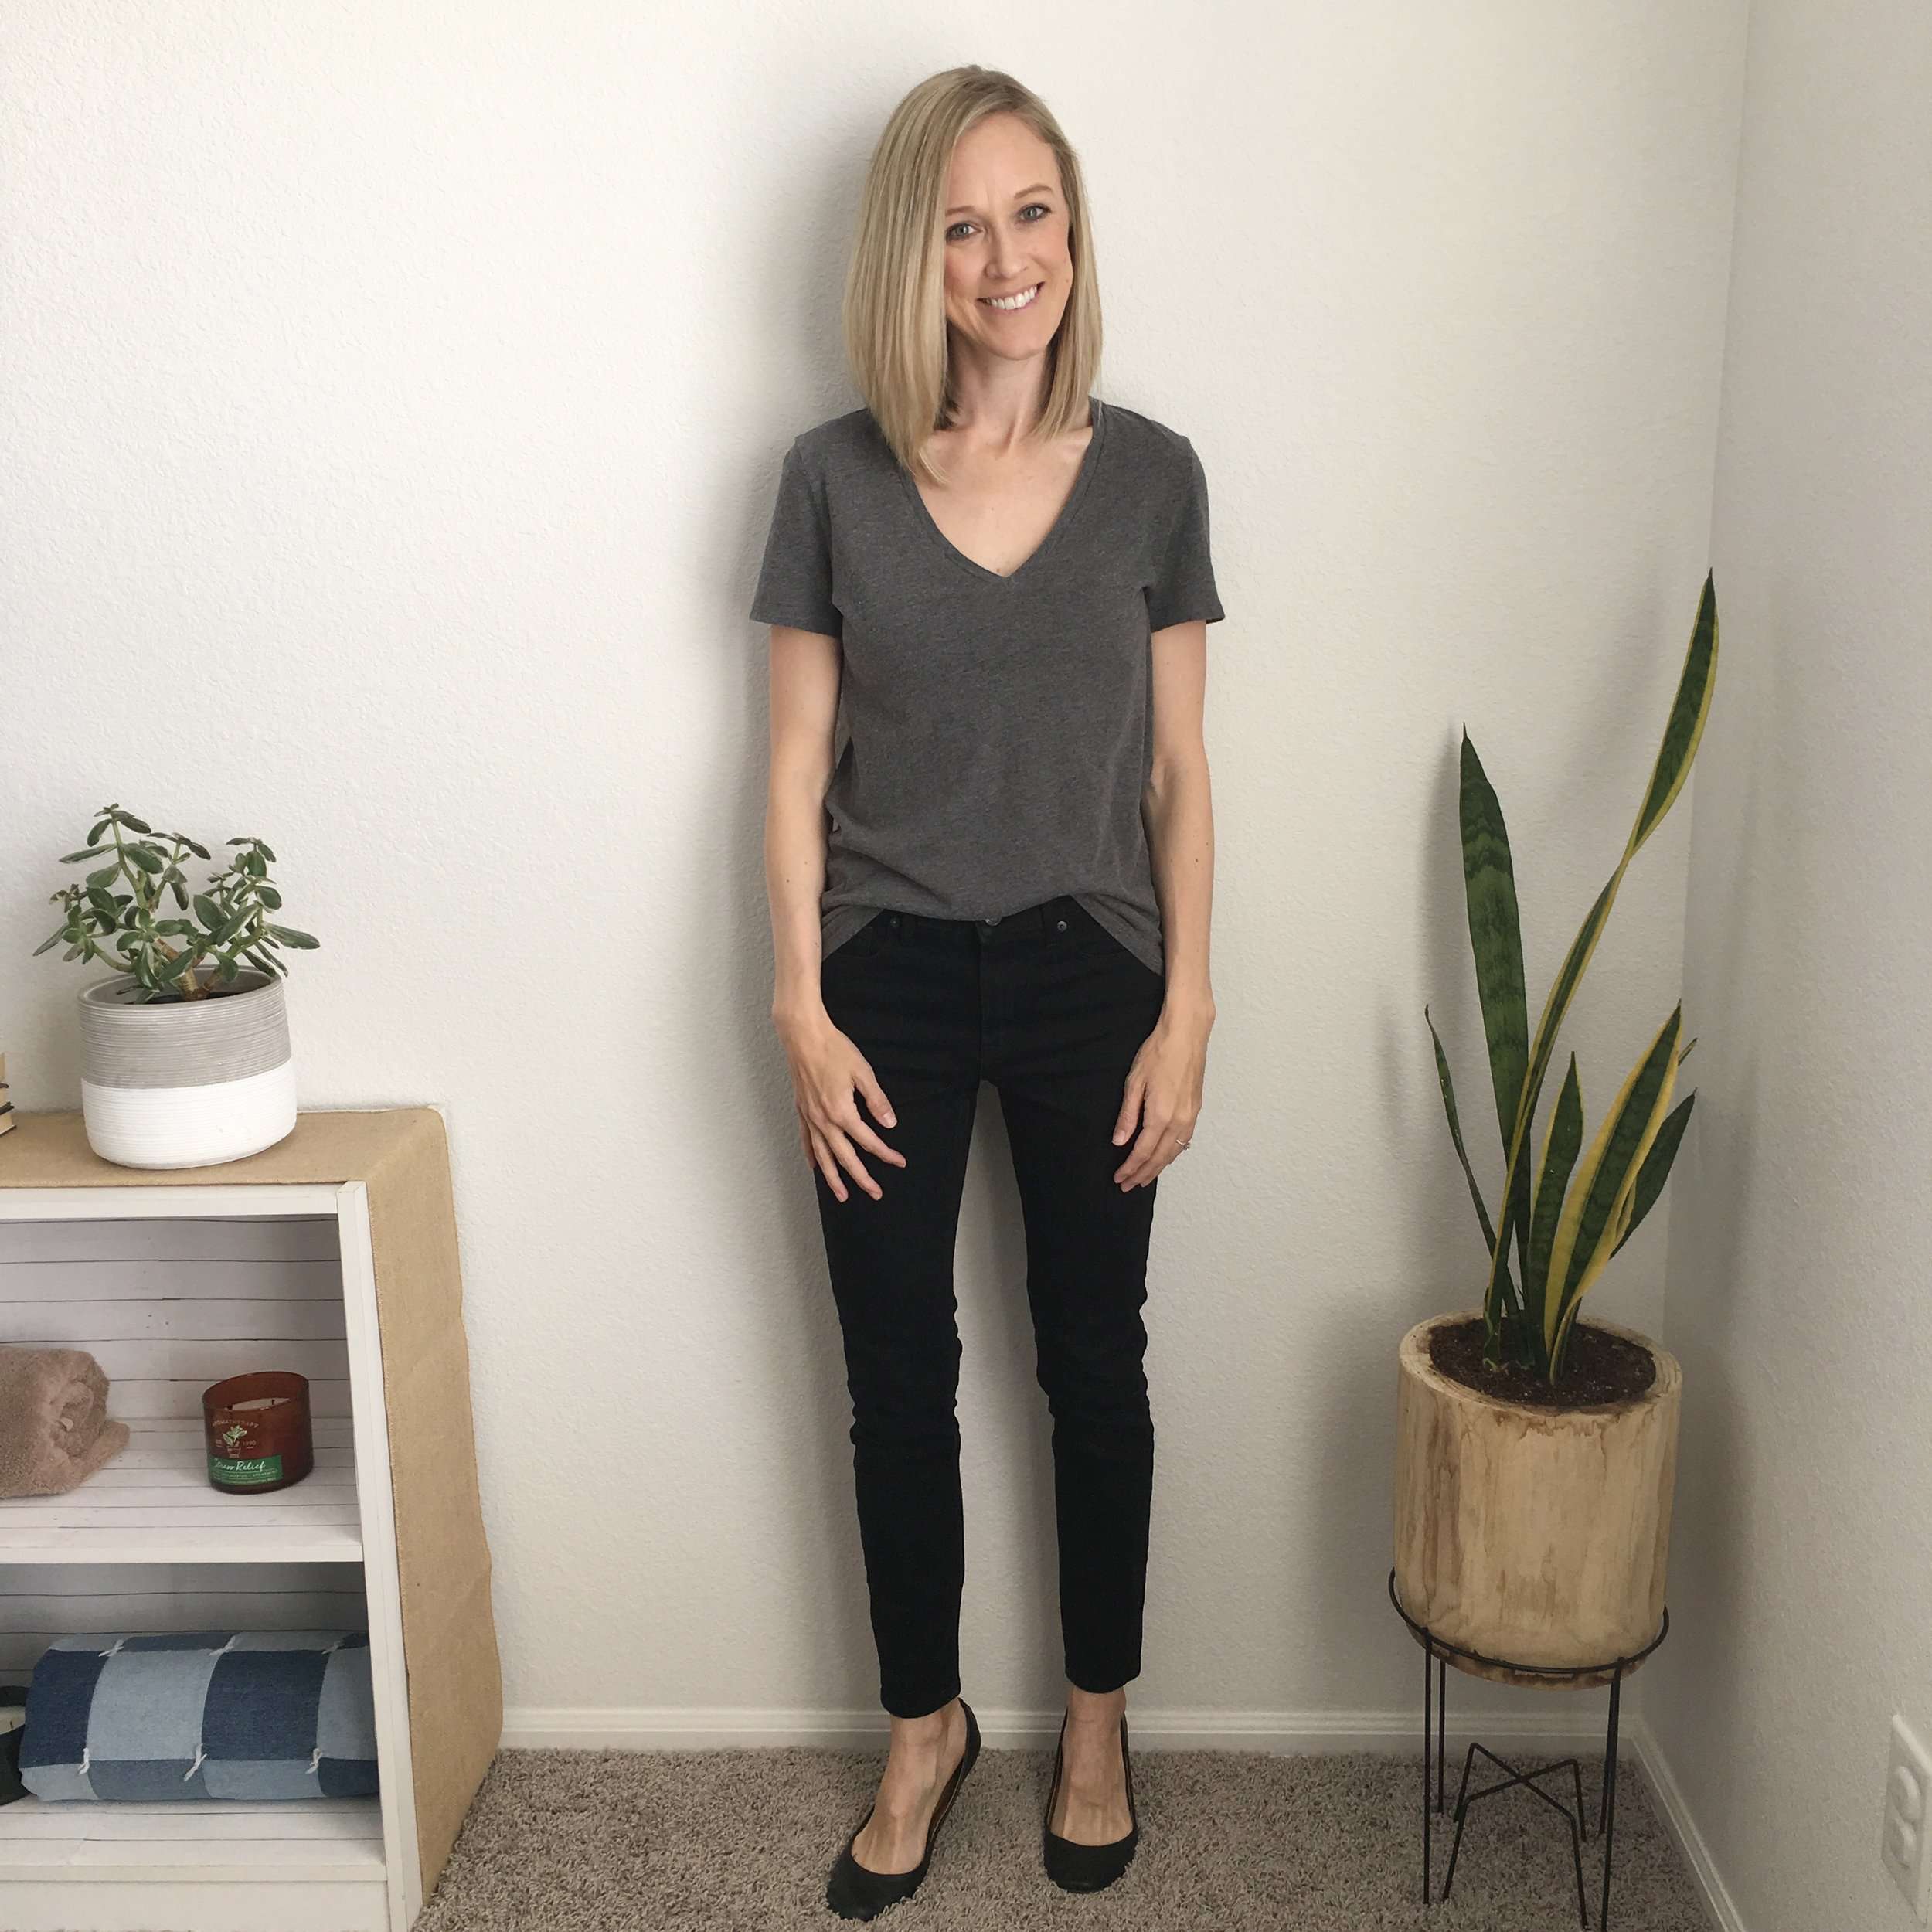 Outfit 2: 10x10 Style Challenge with ethical brands